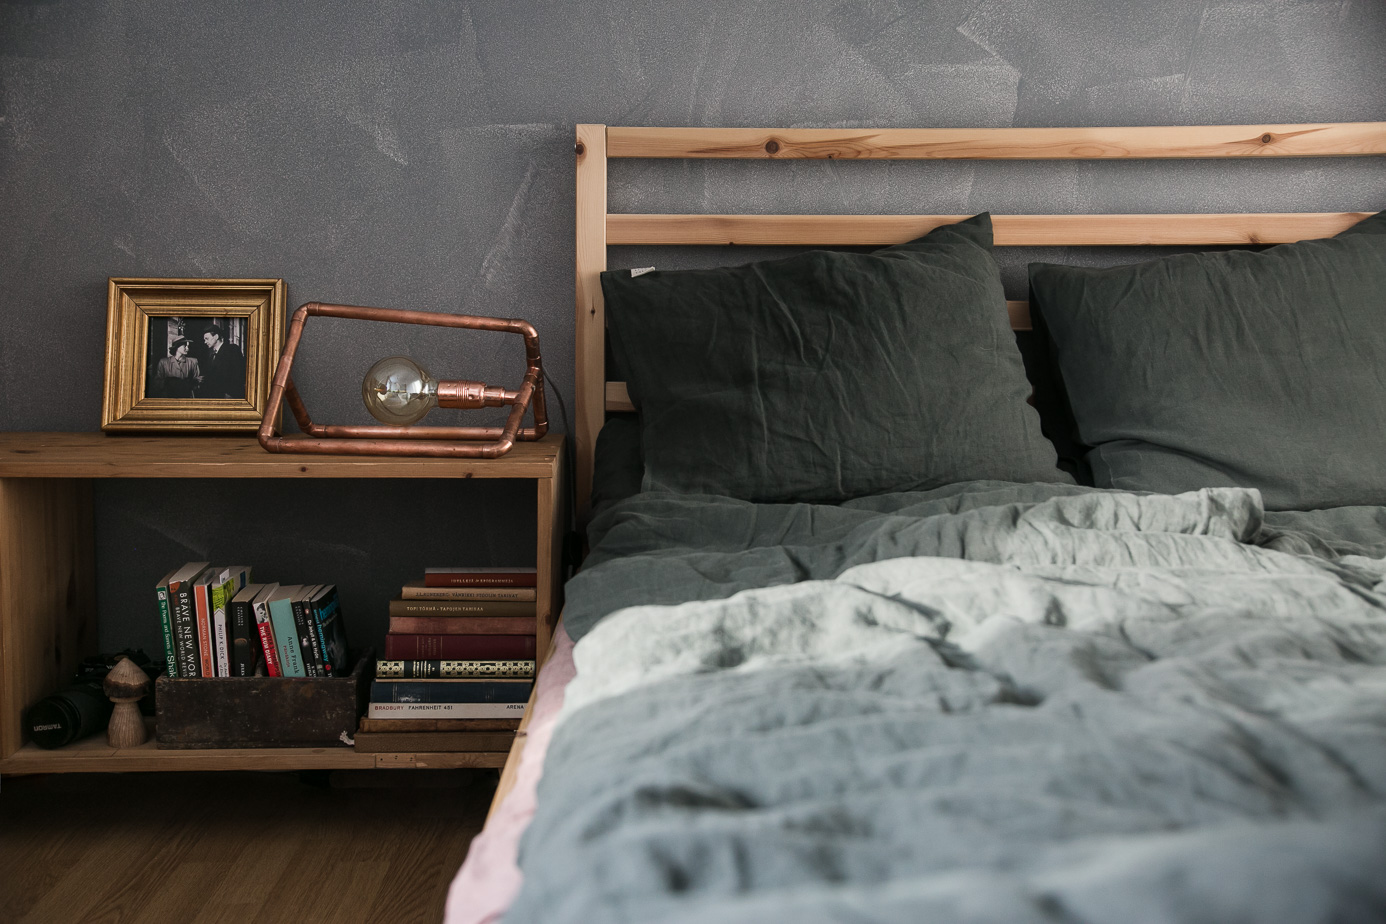 Sleeping survival guide for Nordic countries | Linen bedding by Linen Tales | Forest green duvet linen cover & ashes or roses flat sheet | Copper lamp from Pipe-Lite by Marte || on Due fili d'erba | Two blades of grass | Photos by Thais FK